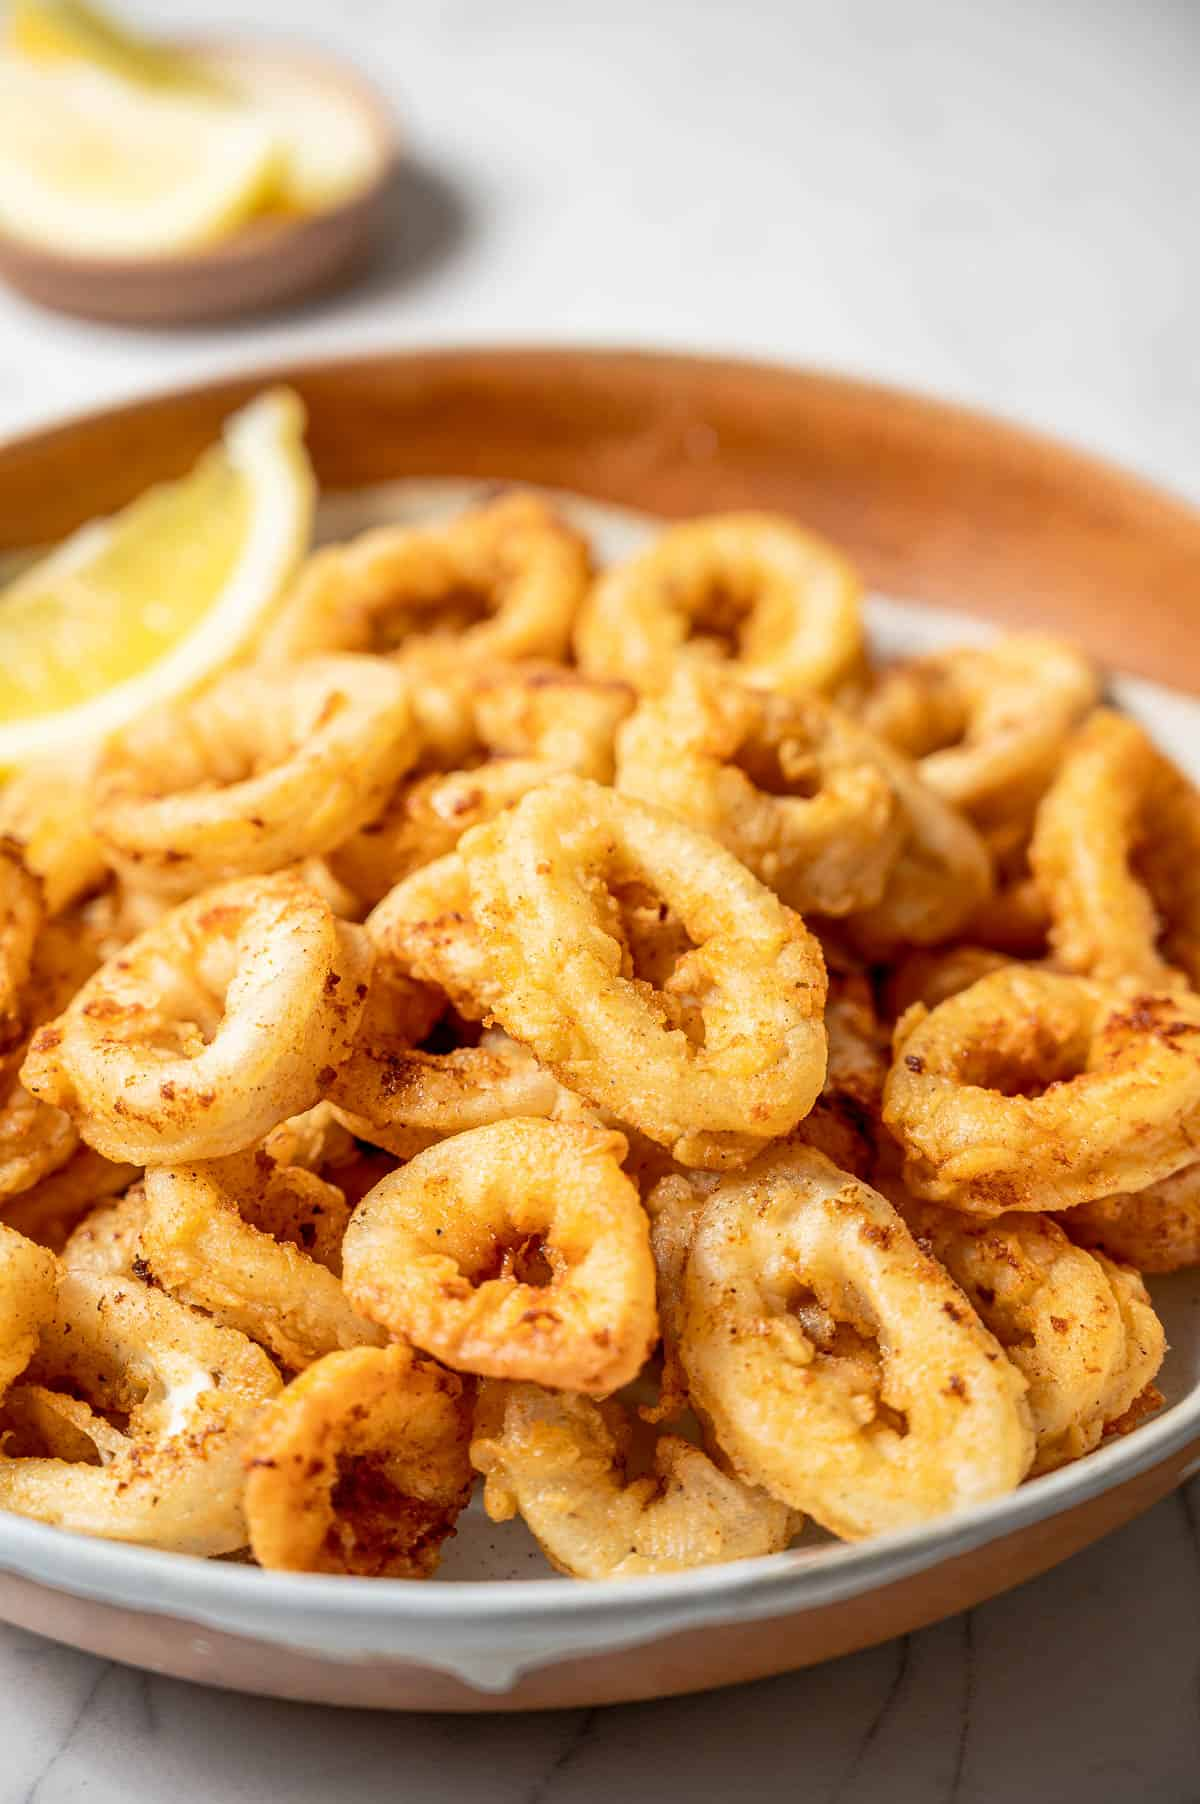 A bowl of fried calamari rings with lemon wedges